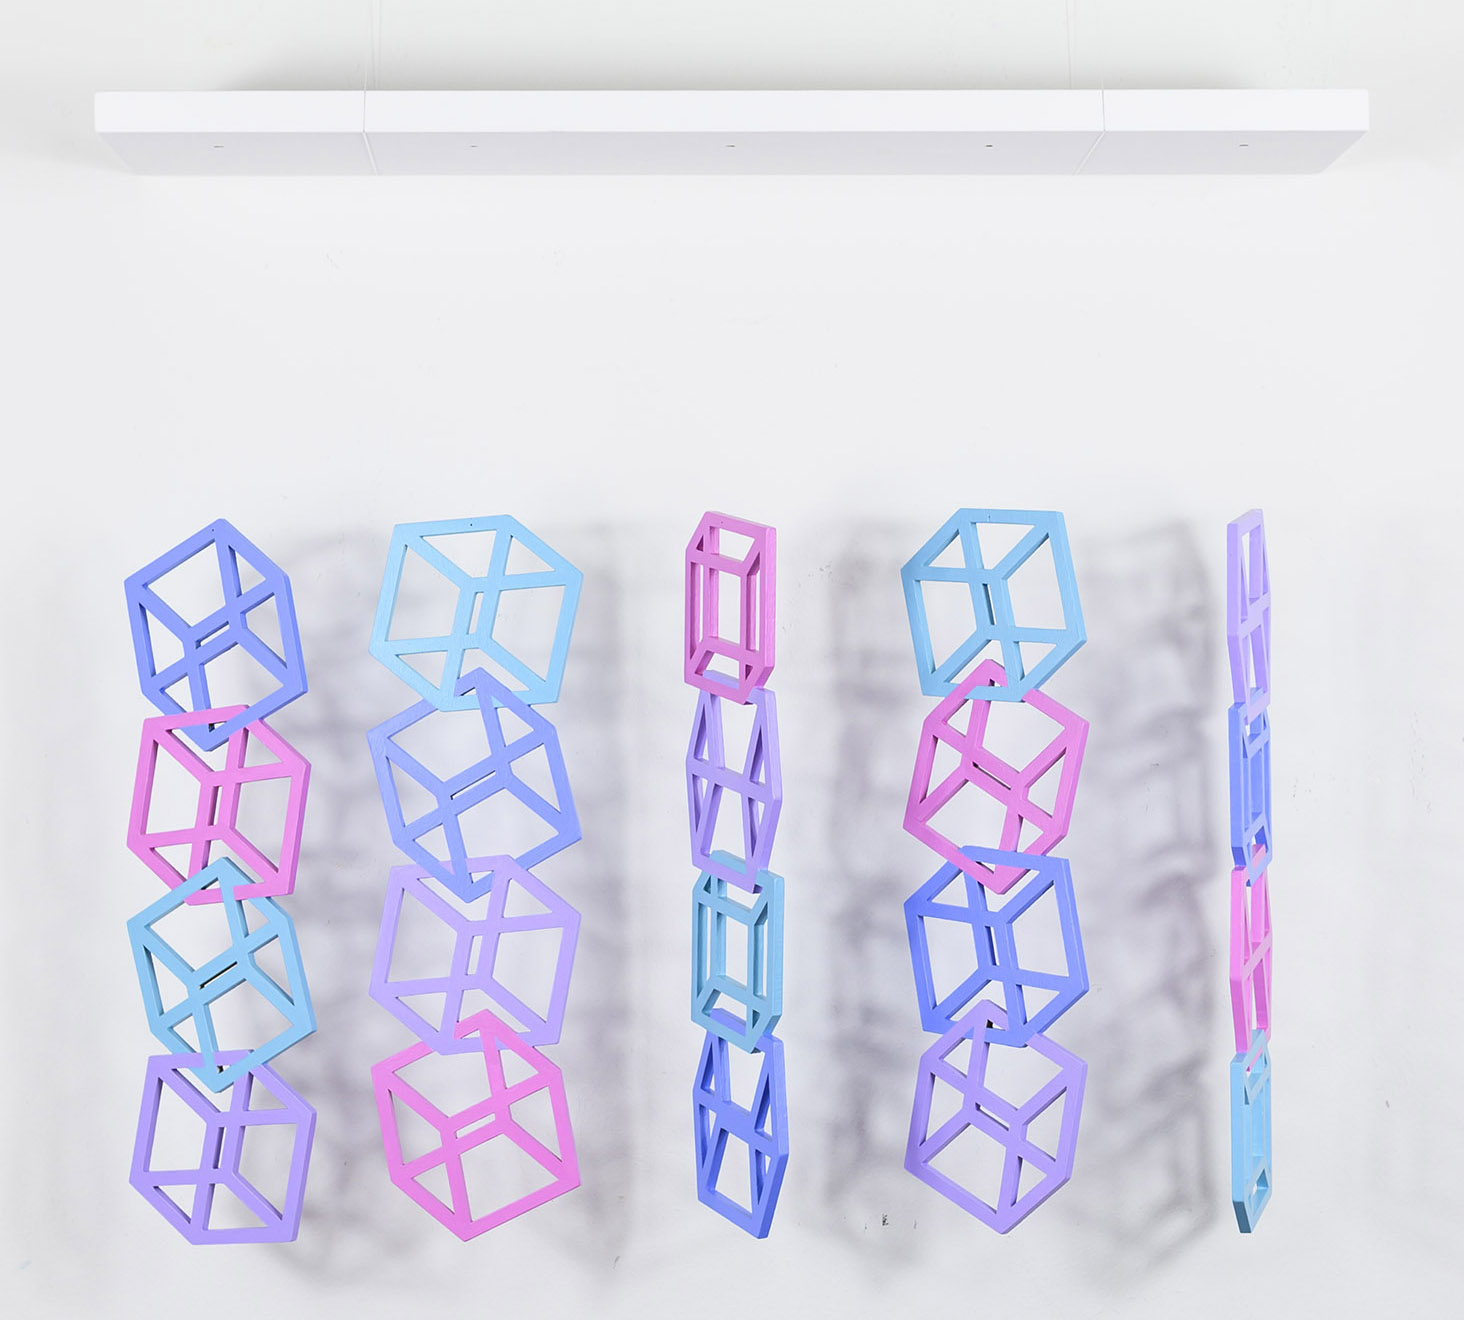 Nested cubes